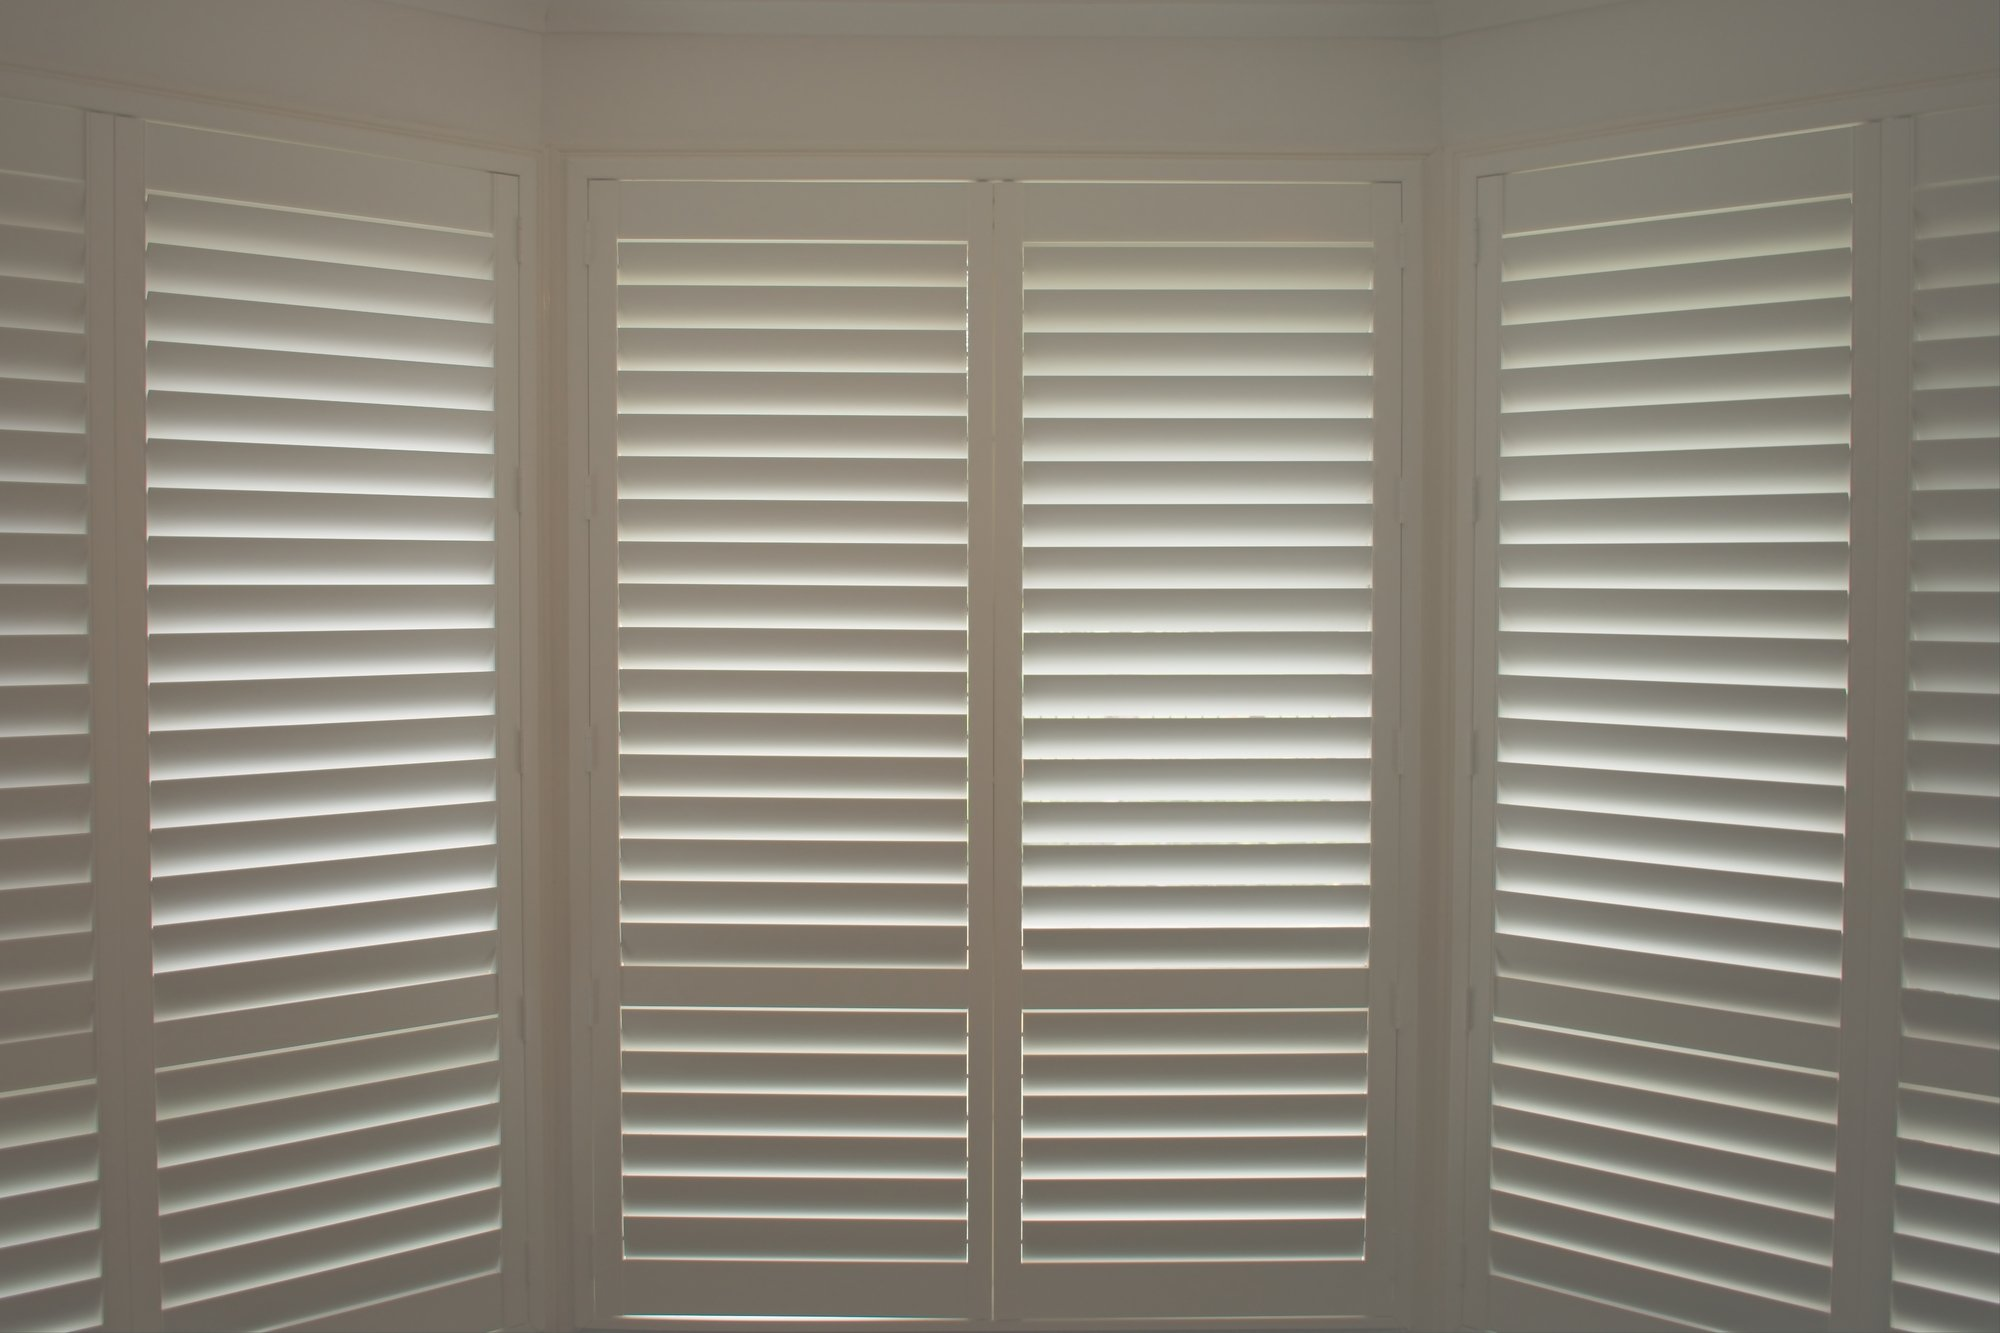 7 Top Plantation Shutter Design According to Cost